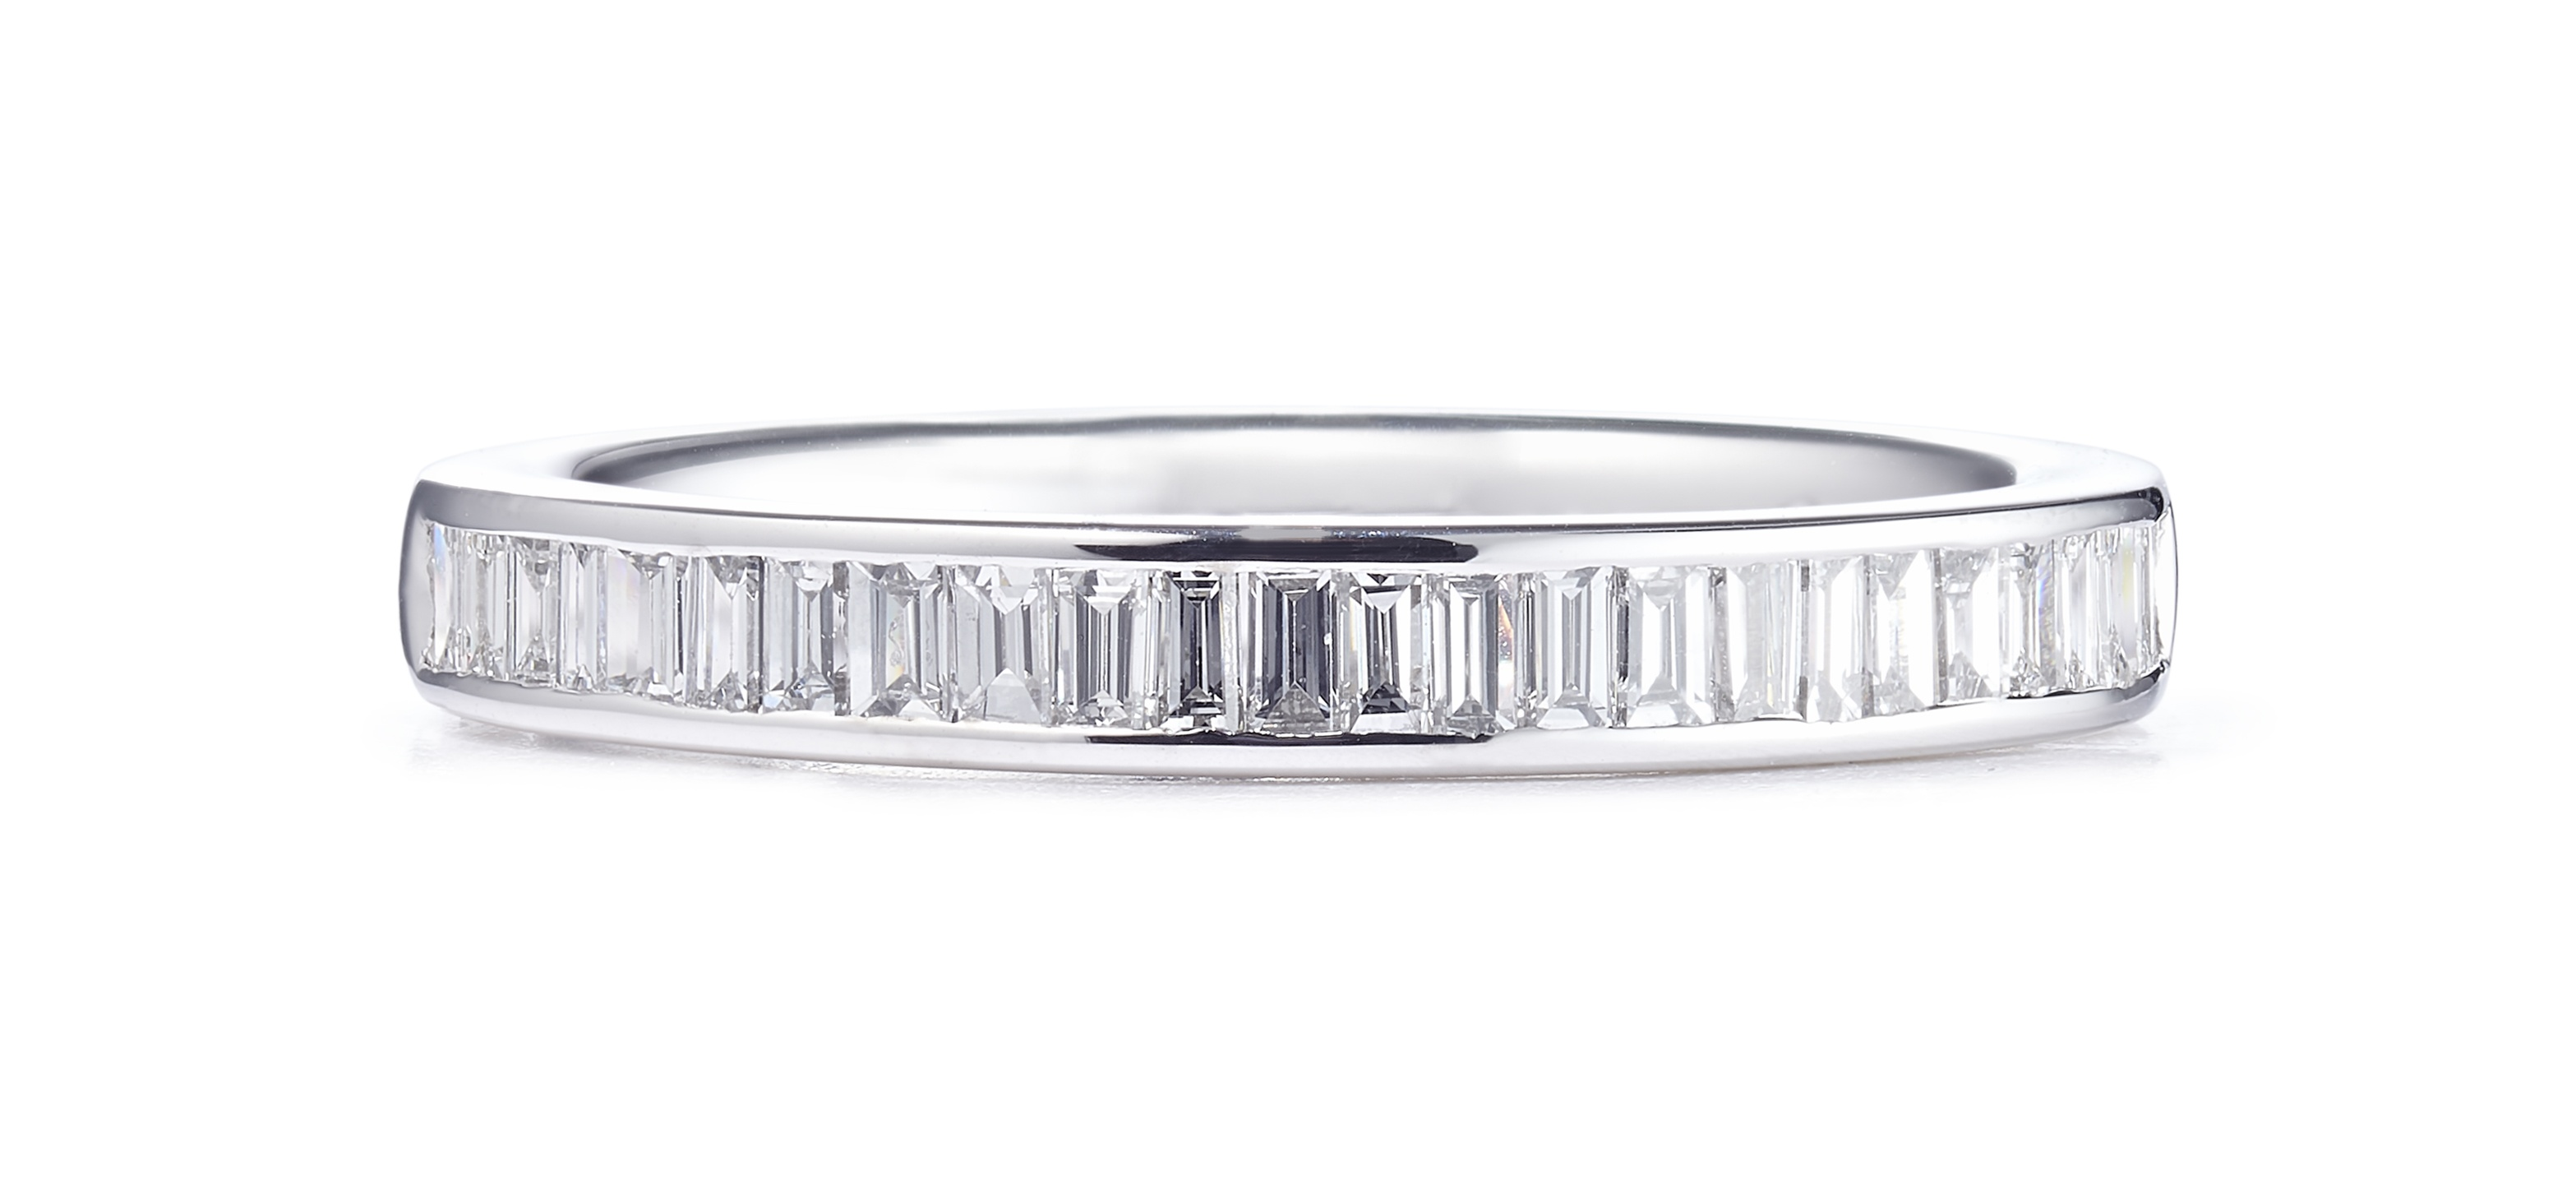 0.47ct Platinum Mounted Baguette Cut Diamond Ring – Finger Size N